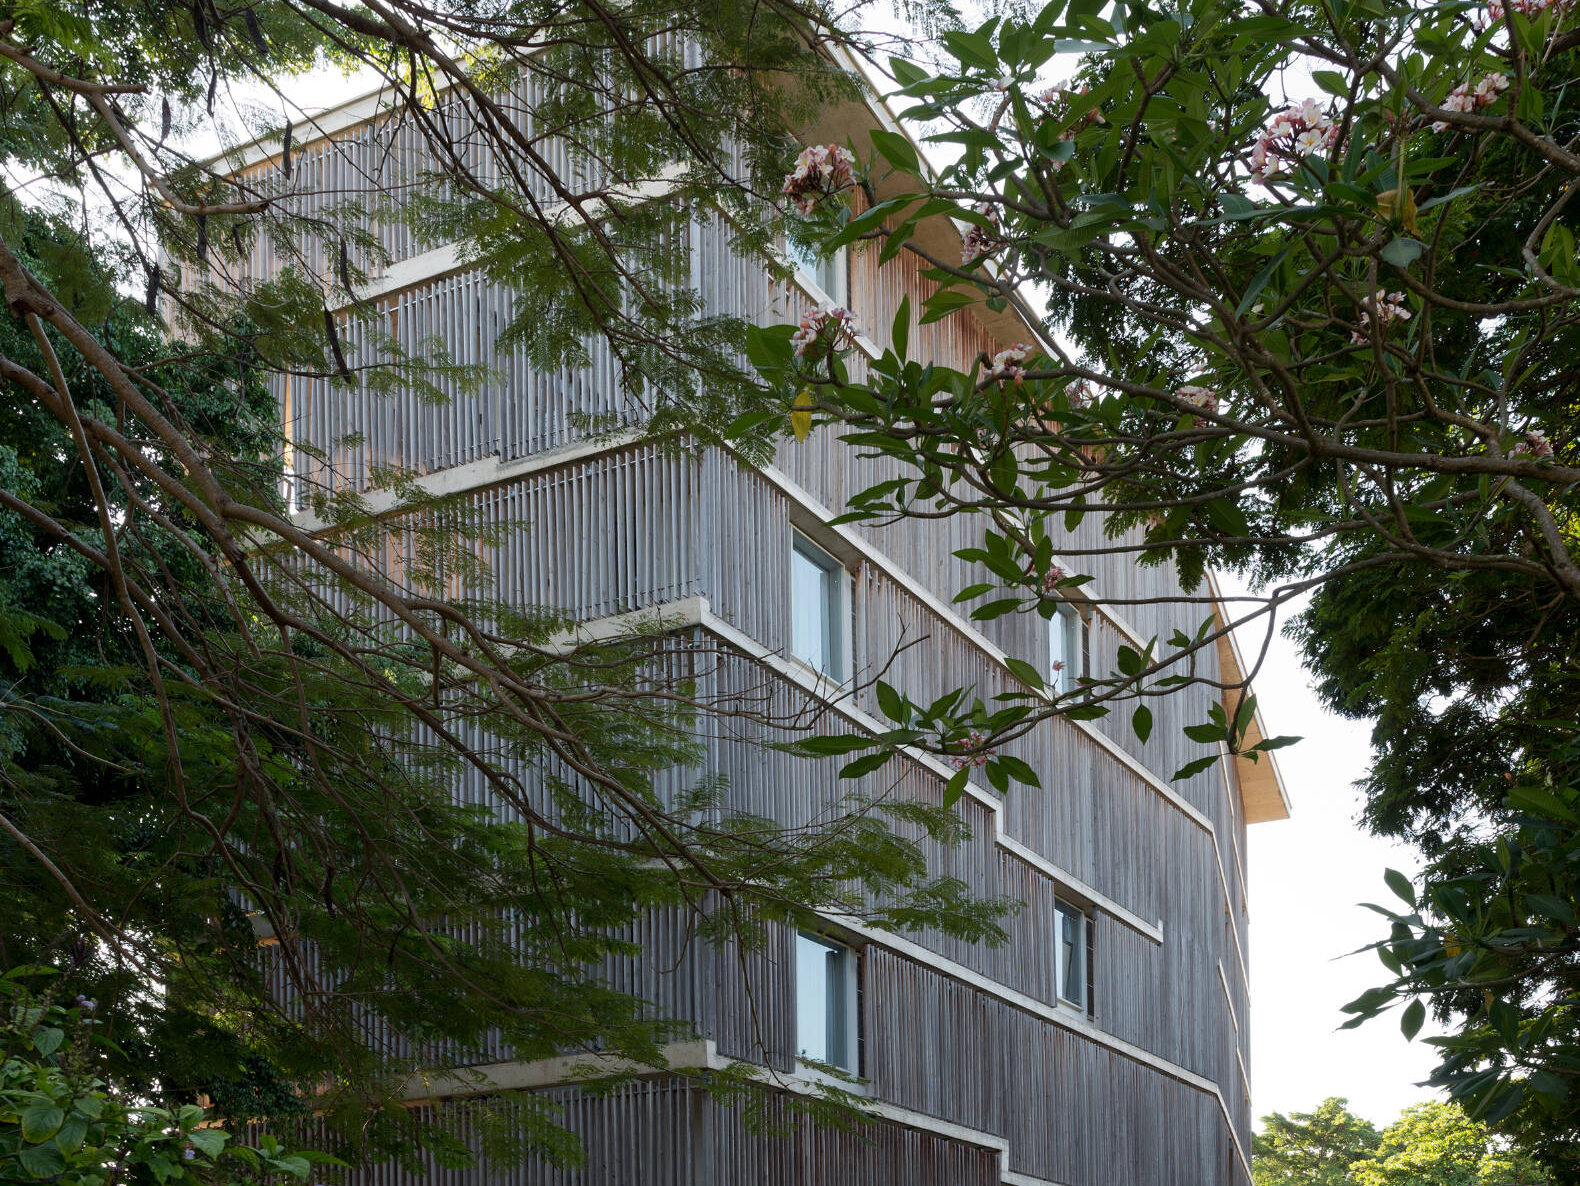 Side view of apartment block covered in wood slats shaded by trees